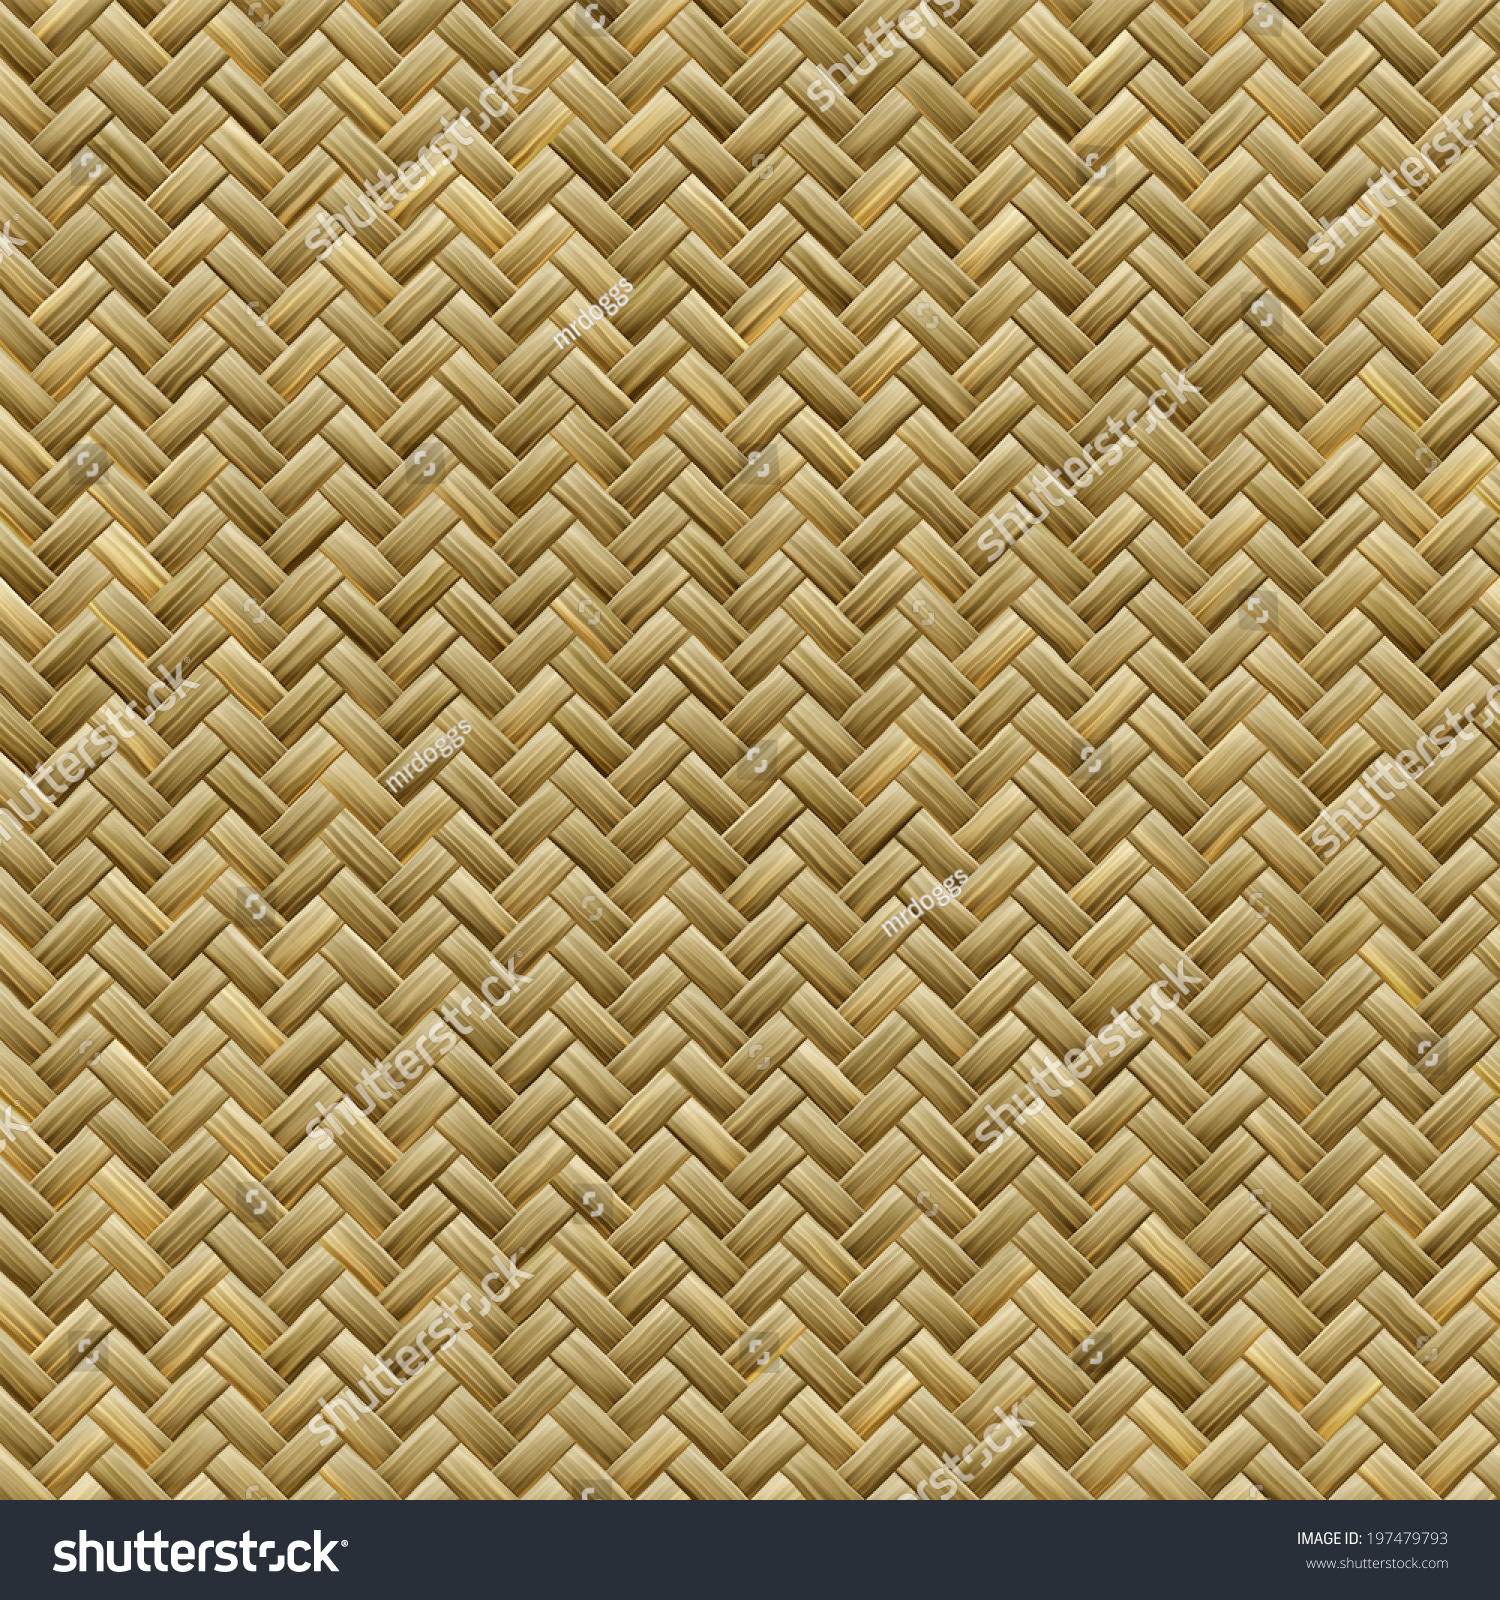 Free Basket Weaving Patterns Pictures : Computer generated graphic design seamless realistic stock